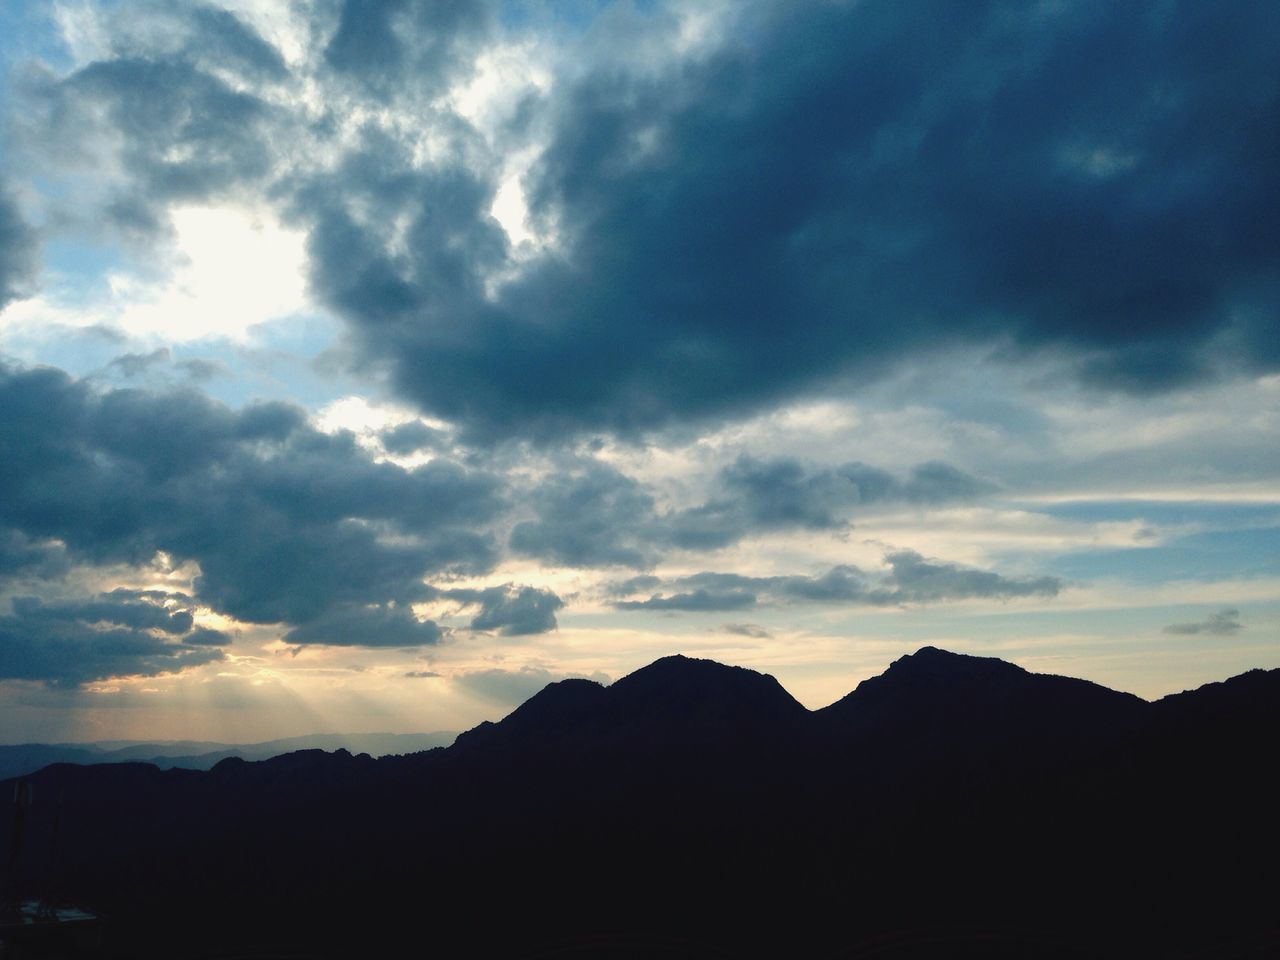 silhouette, sky, beauty in nature, tranquil scene, nature, scenics, tranquility, mountain, cloud - sky, no people, sunset, outdoors, landscape, day